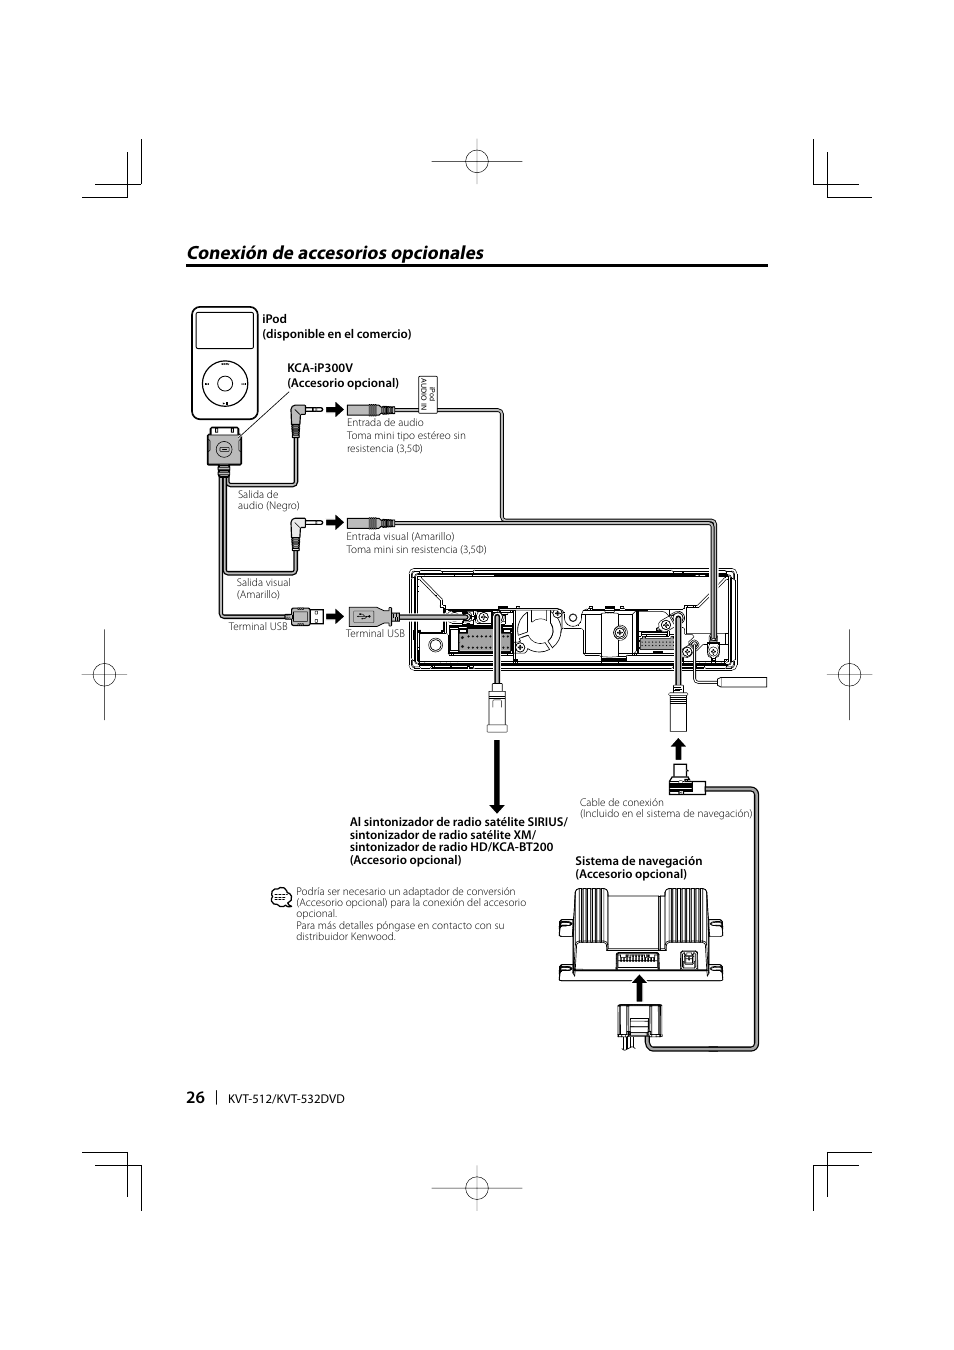 Kenwood Kvt 516 Installation Manual Wiring Diagram Conexi N De Accesorios Opcionales 532 User Rh Manualsdir Com